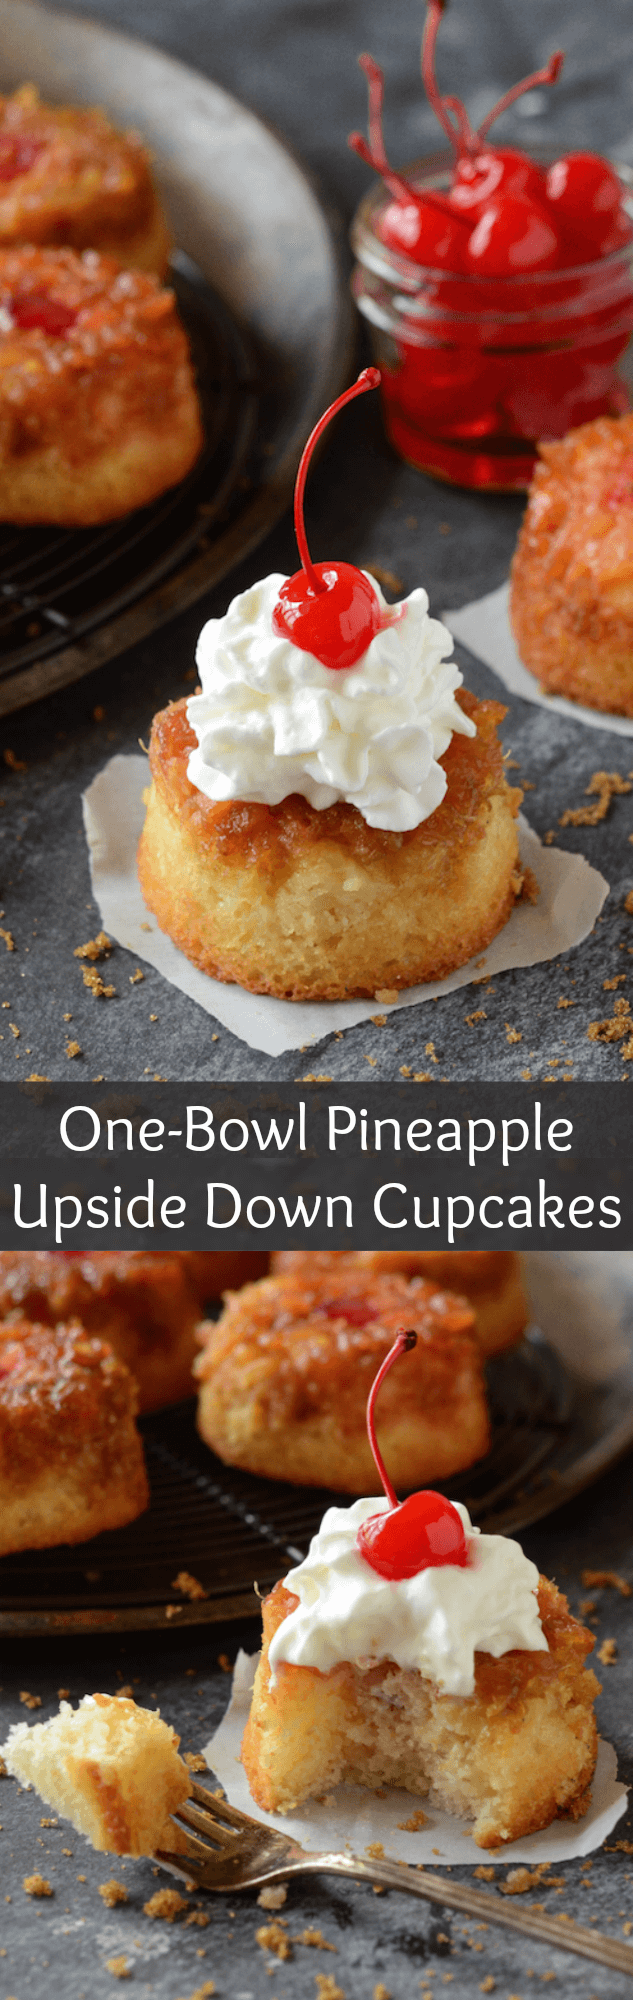 These One-Bowl Pineapple Upside Down Cupcakes are just like the classic version -- a sweet dense cake with a brown sugar caramelized pineapple topping!